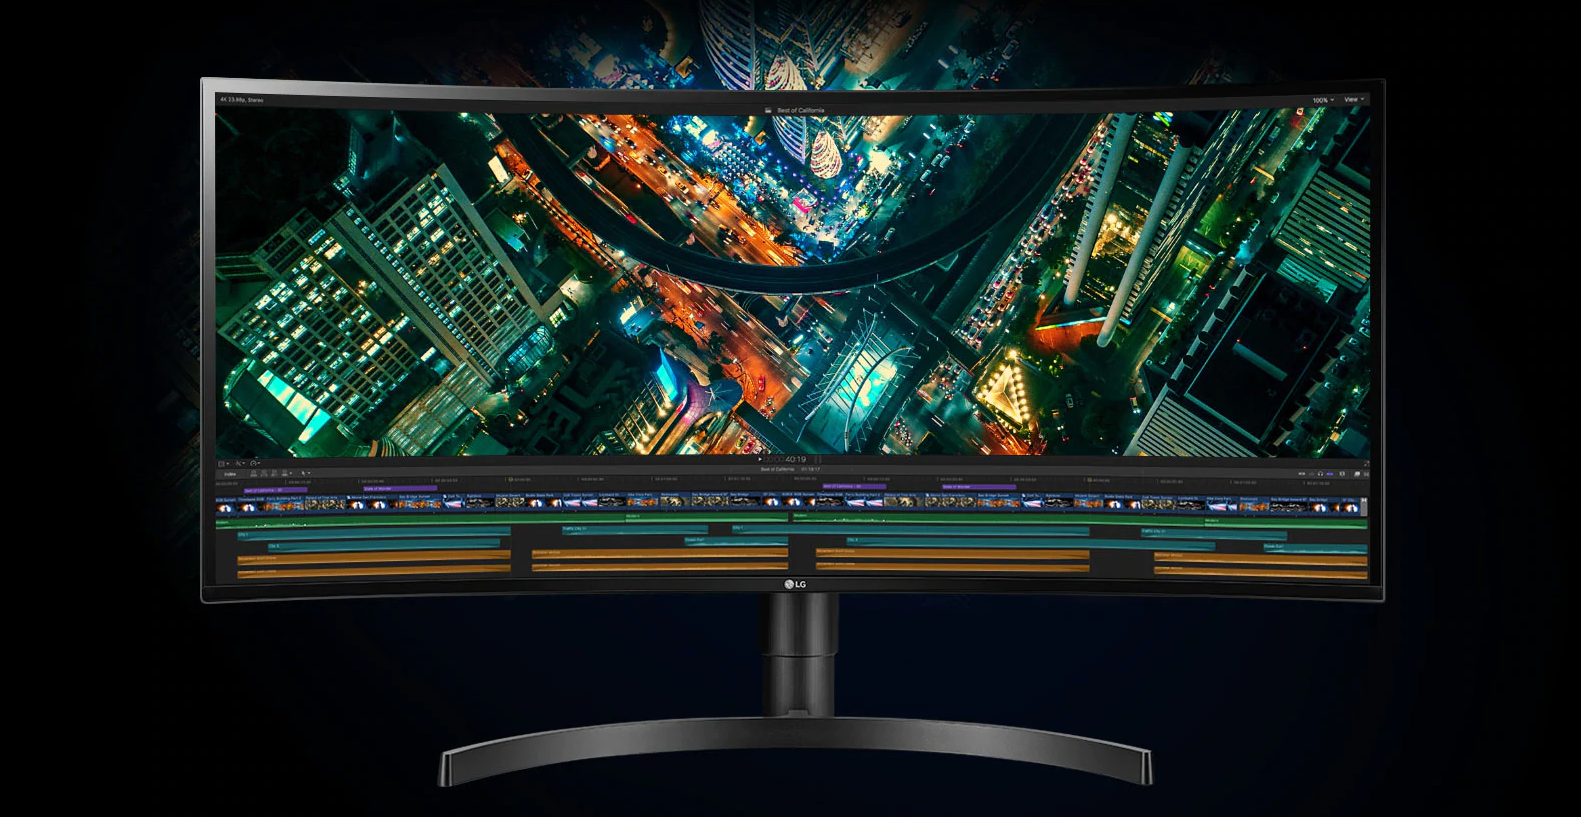 The LG 34WN80C-B UltraWide USB-C 1440p Ultrawide professional monitor pricing drops to $516